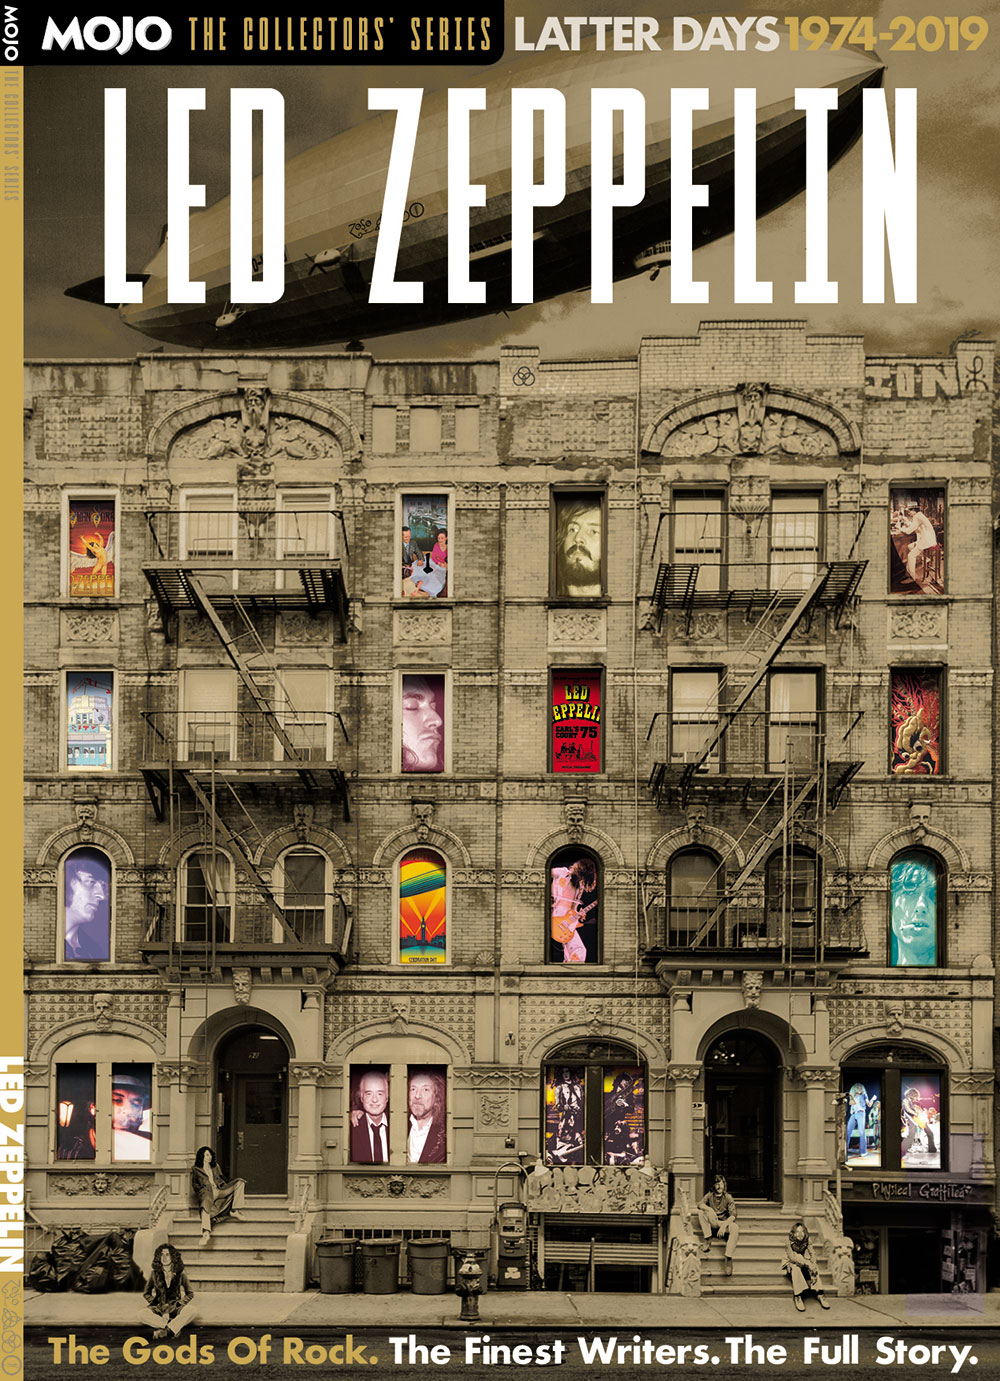 Led Zeppelin: Latter Days – available soon!